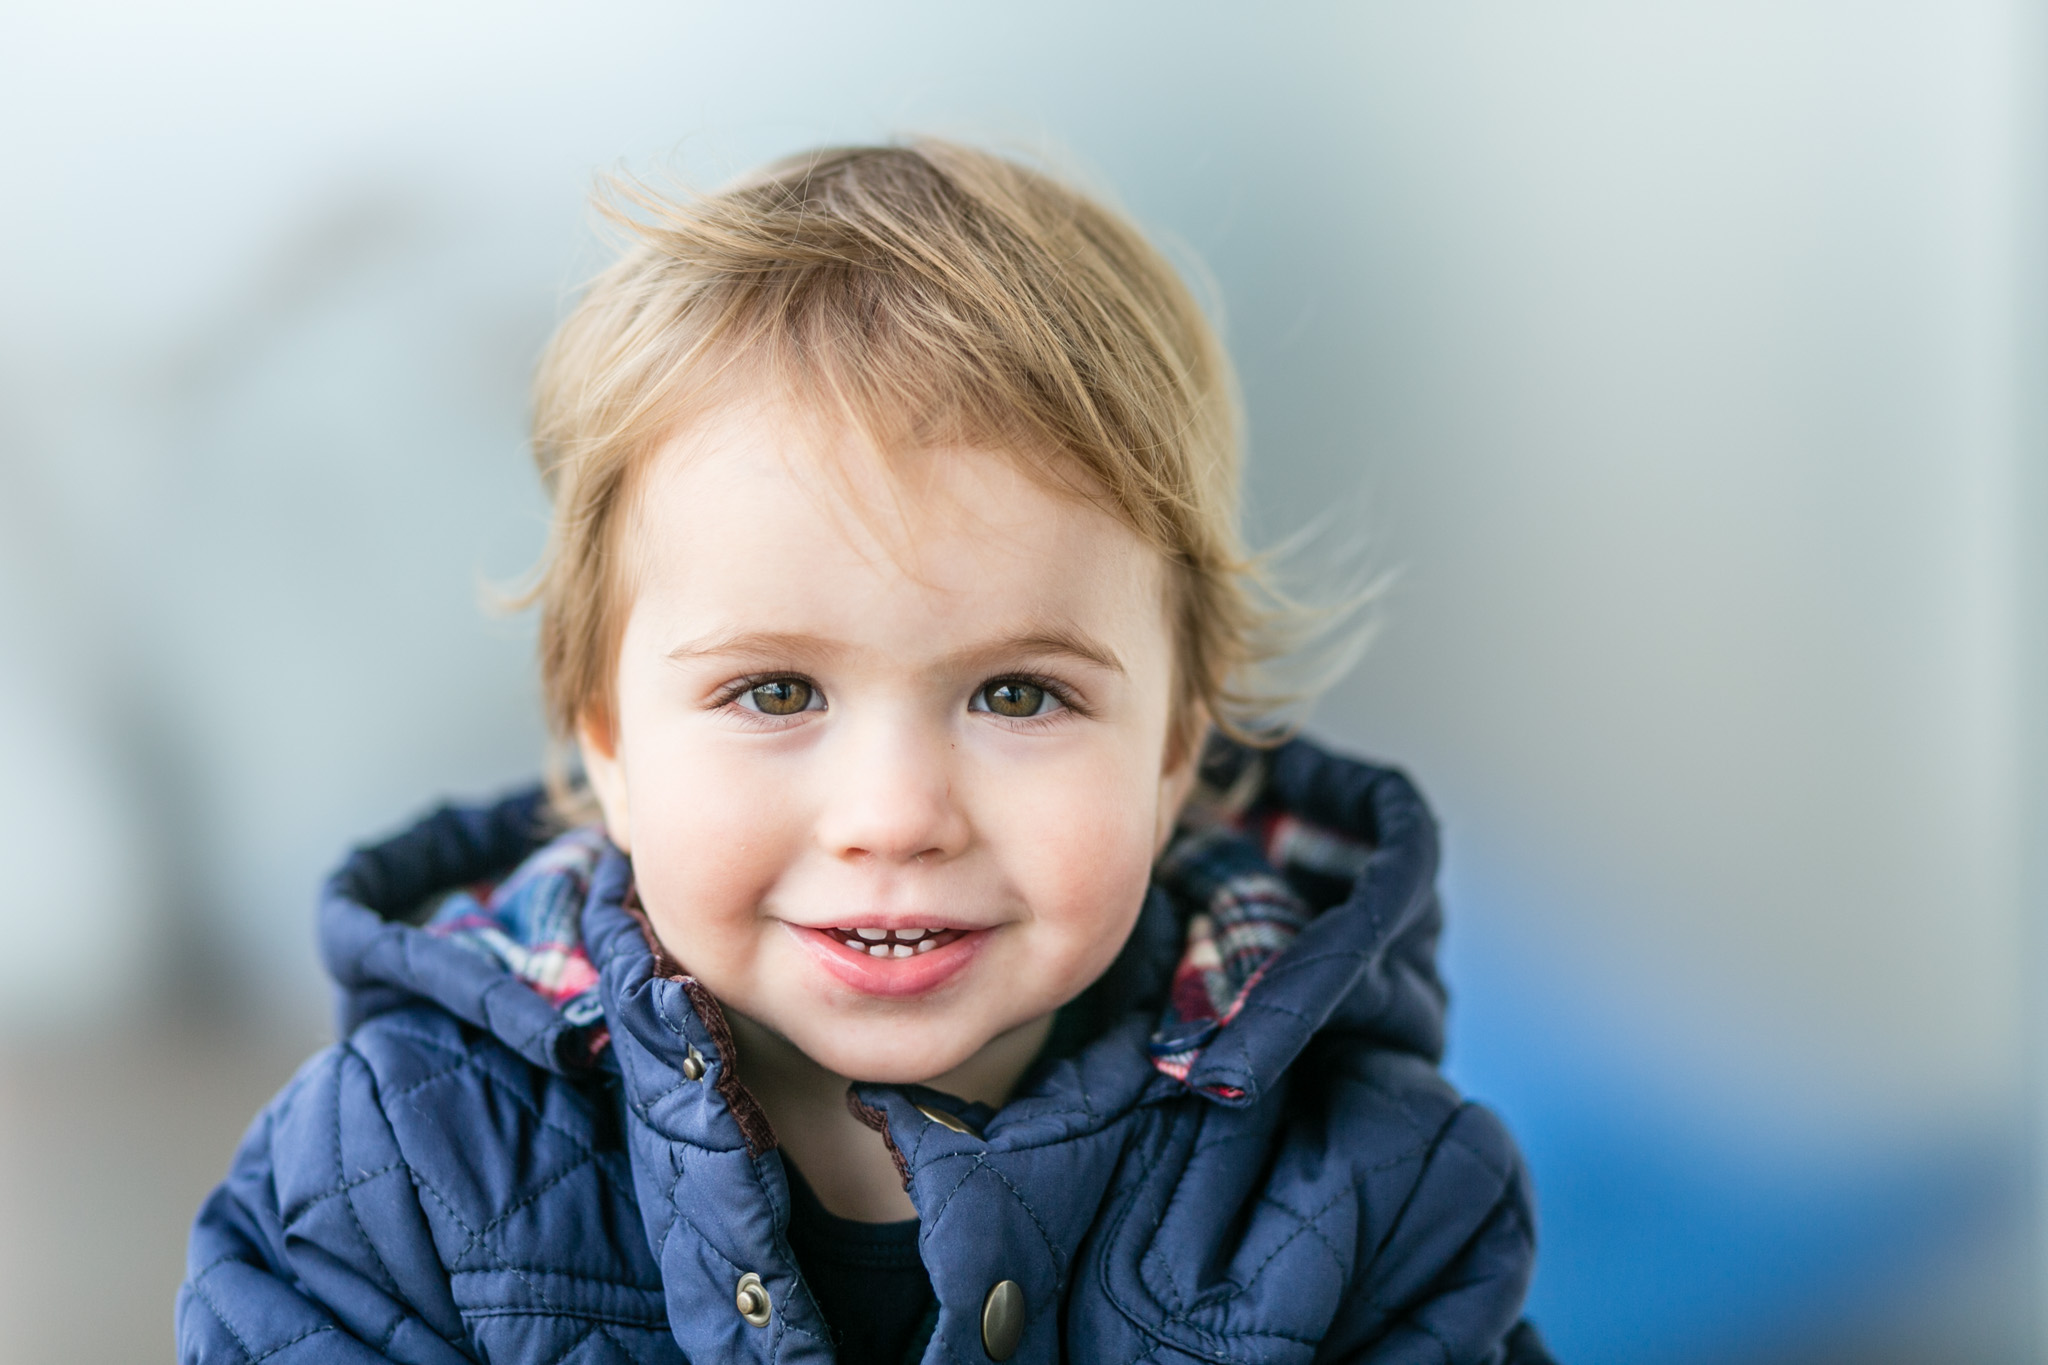 10 Tips to Help You Take Great Photos of Your Kids